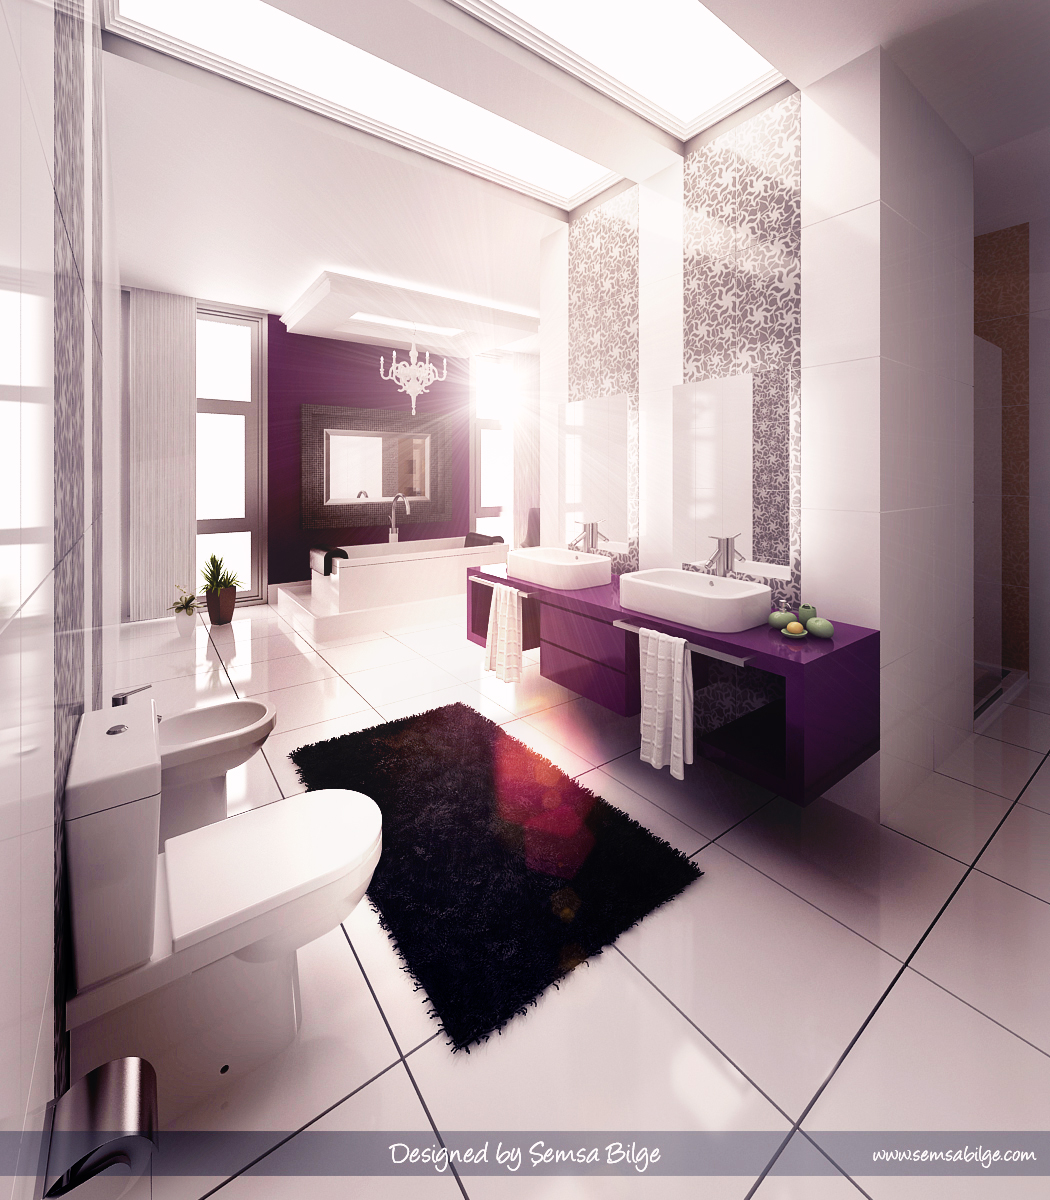 Inspiring bathroom designs for the soul for Bathroom design gallery